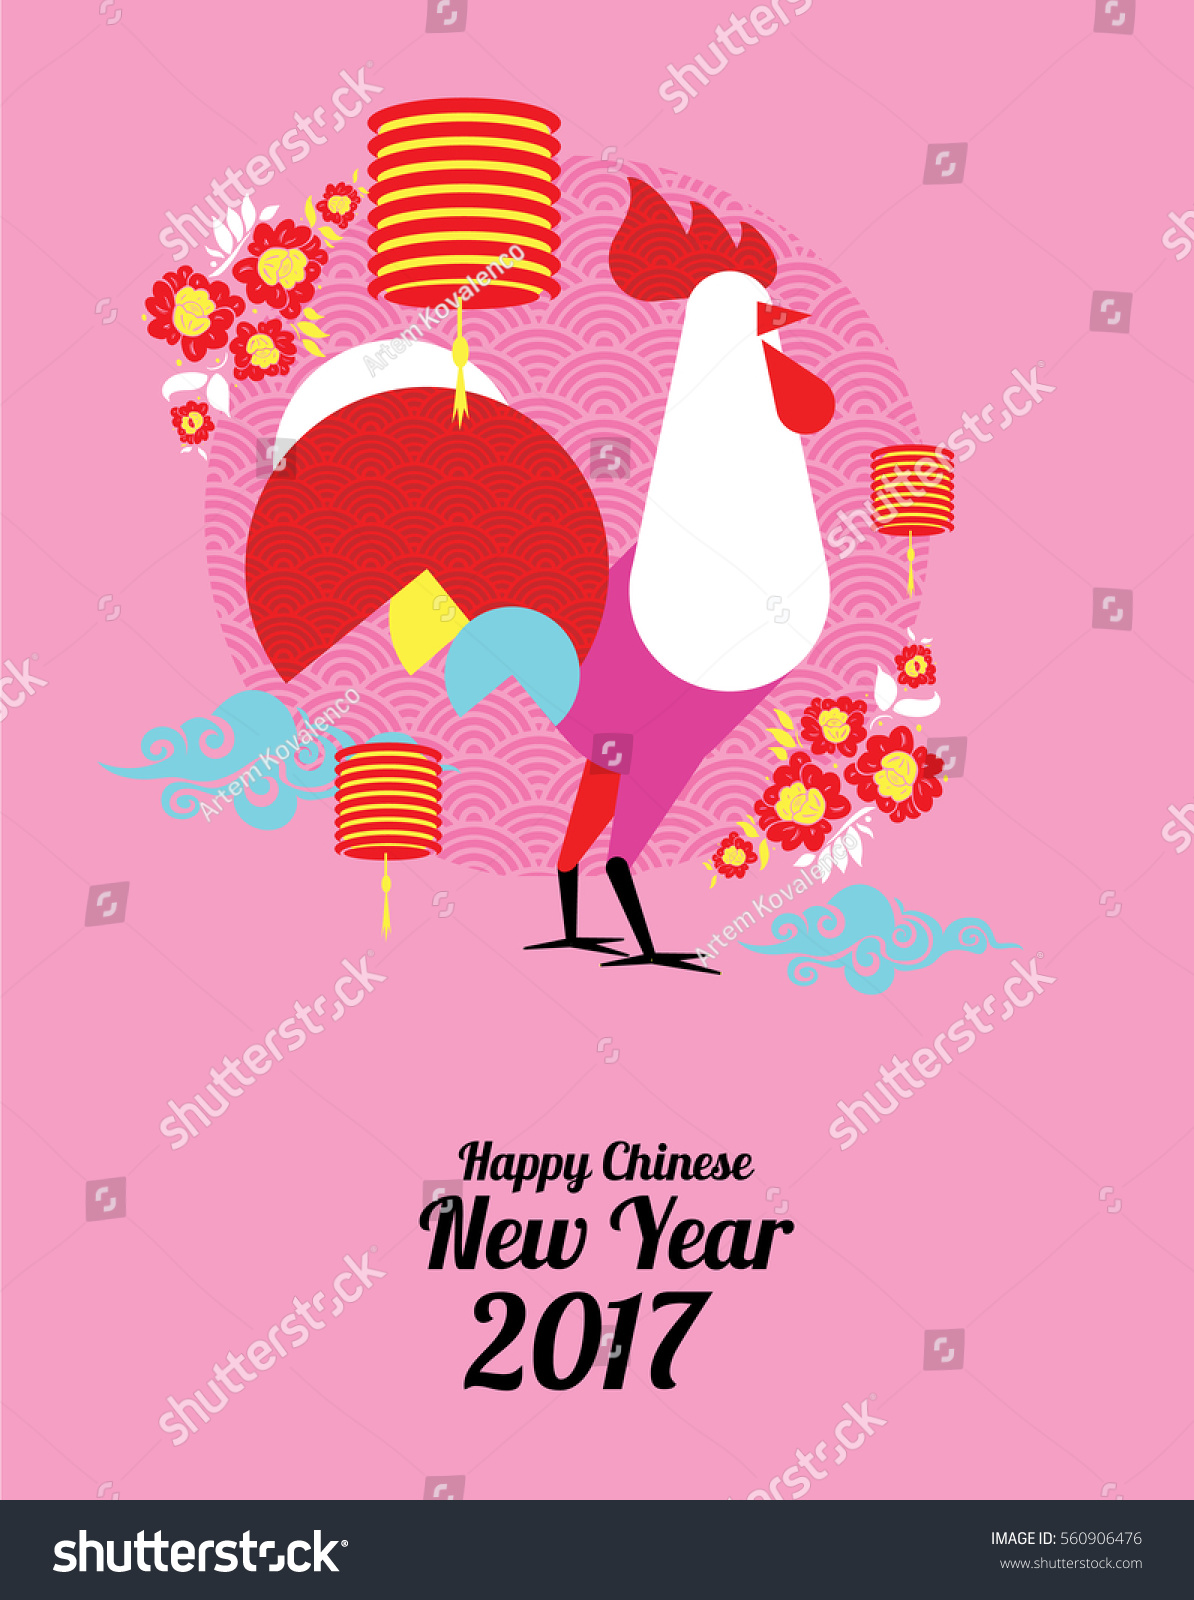 Chinese Calendar Illustration : Vector illustration chinese new year stock